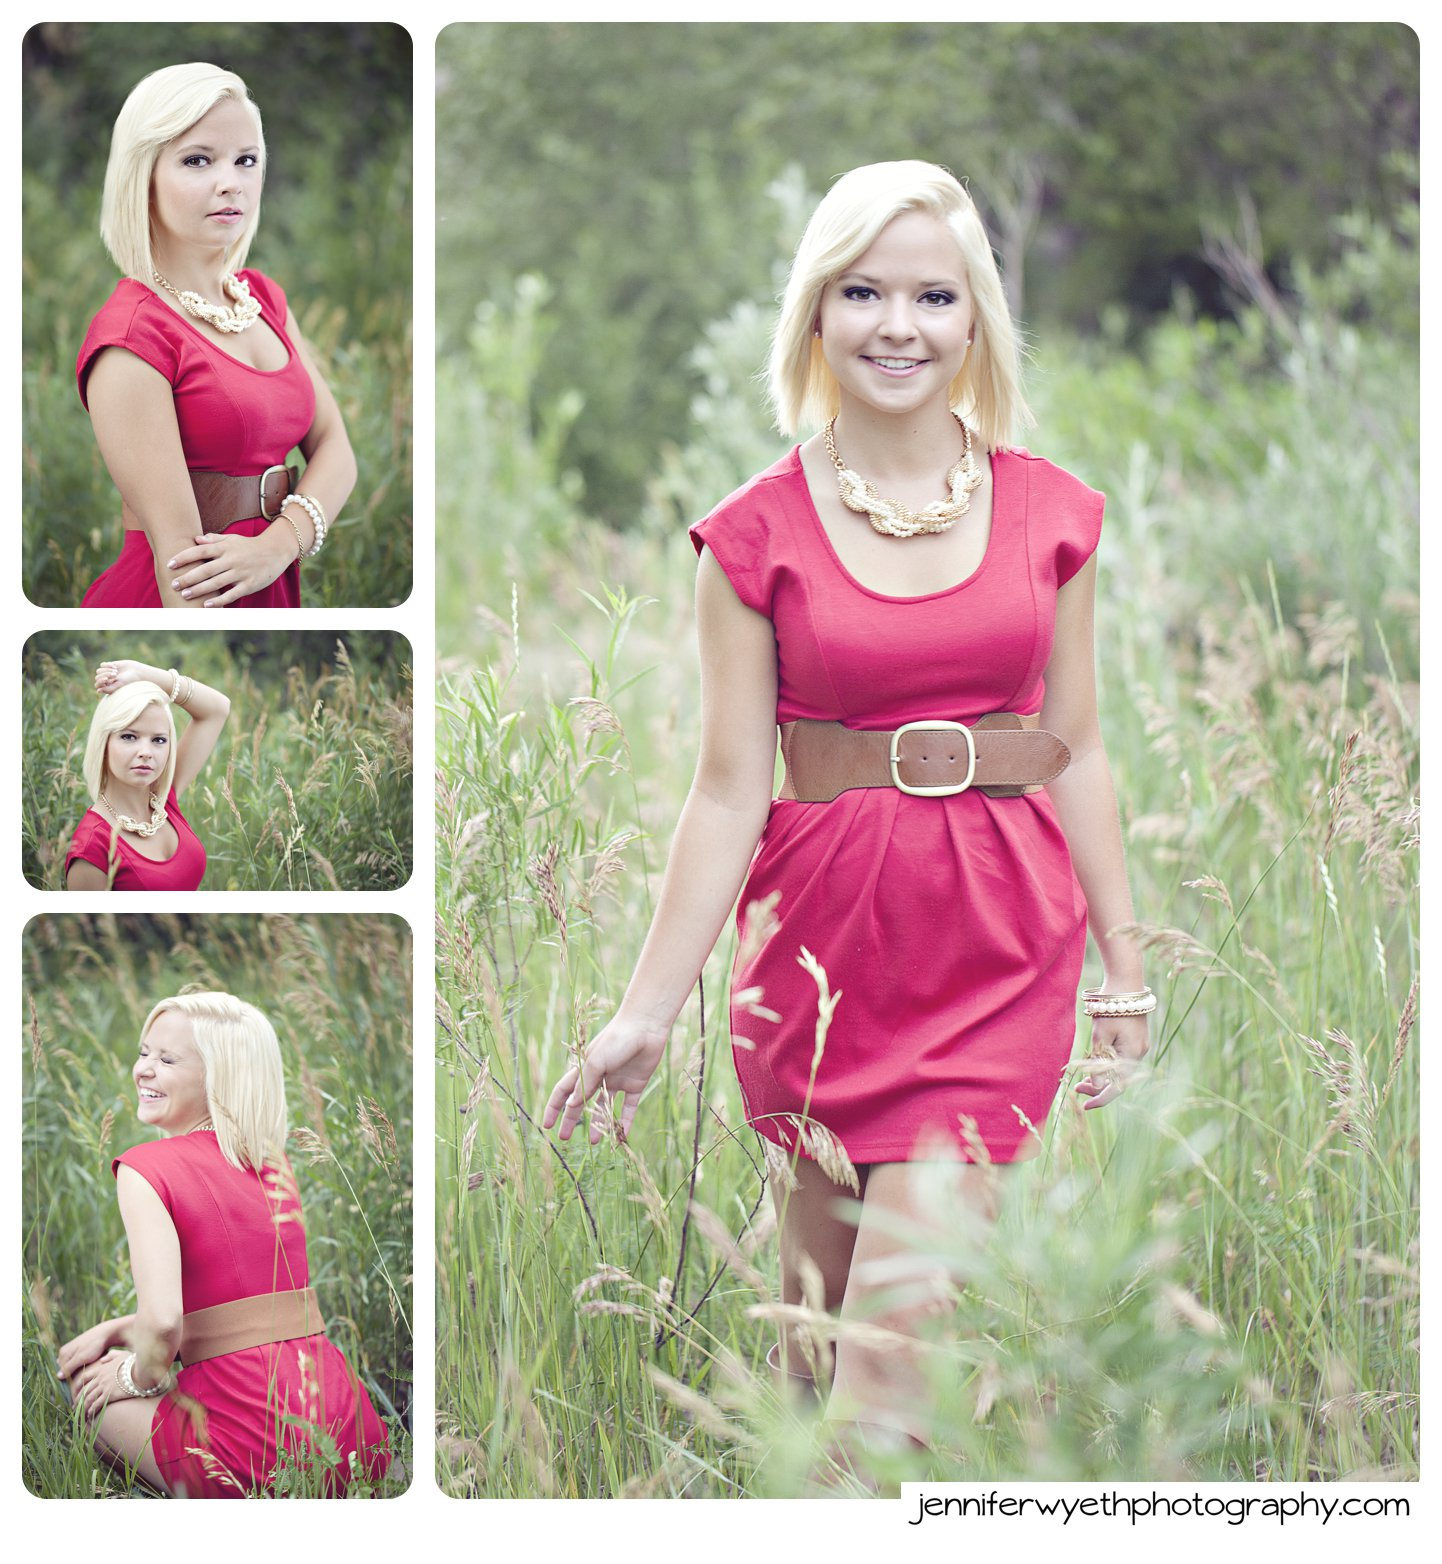 blond teenager poses and laughs in red dress in tall grass